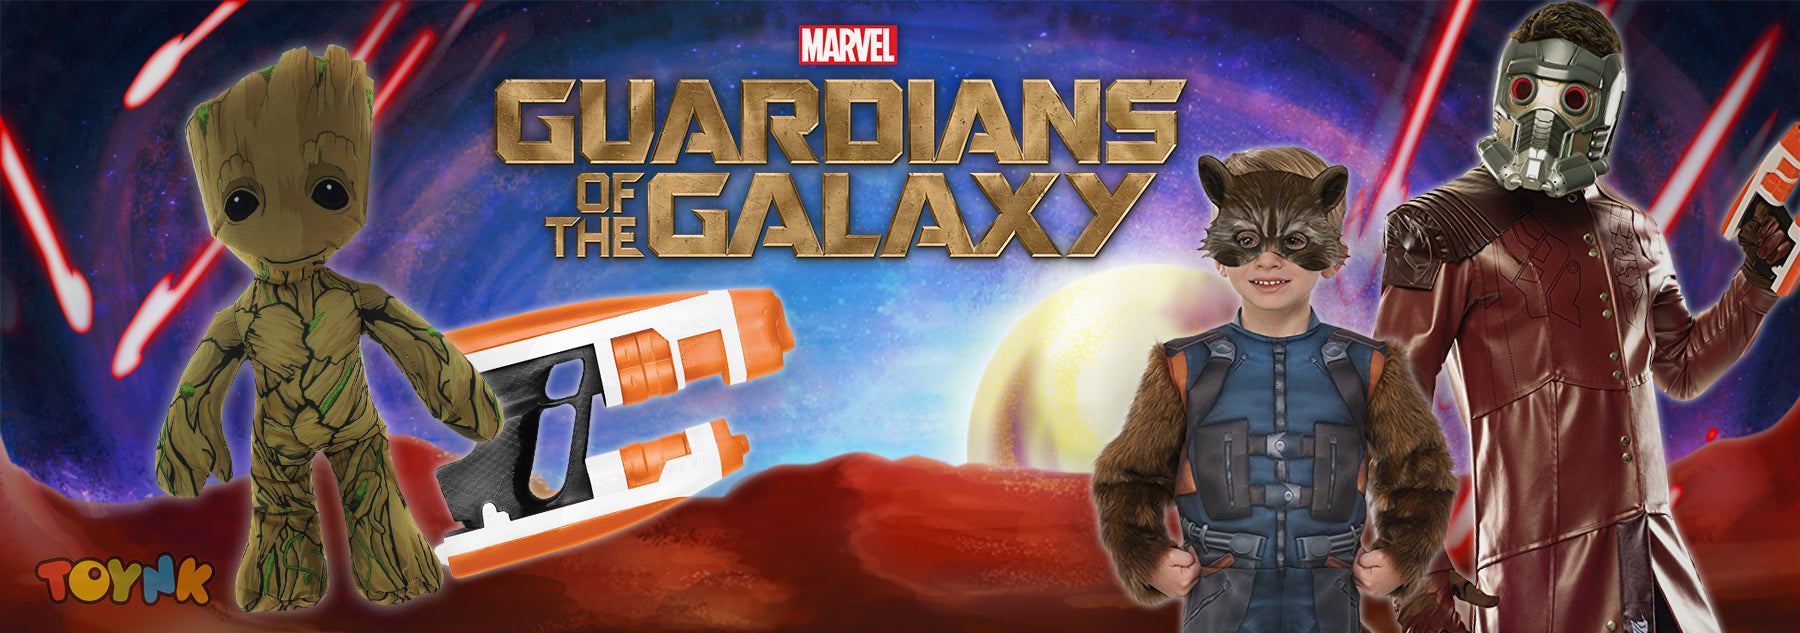 Shop Guardians of the Galaxy